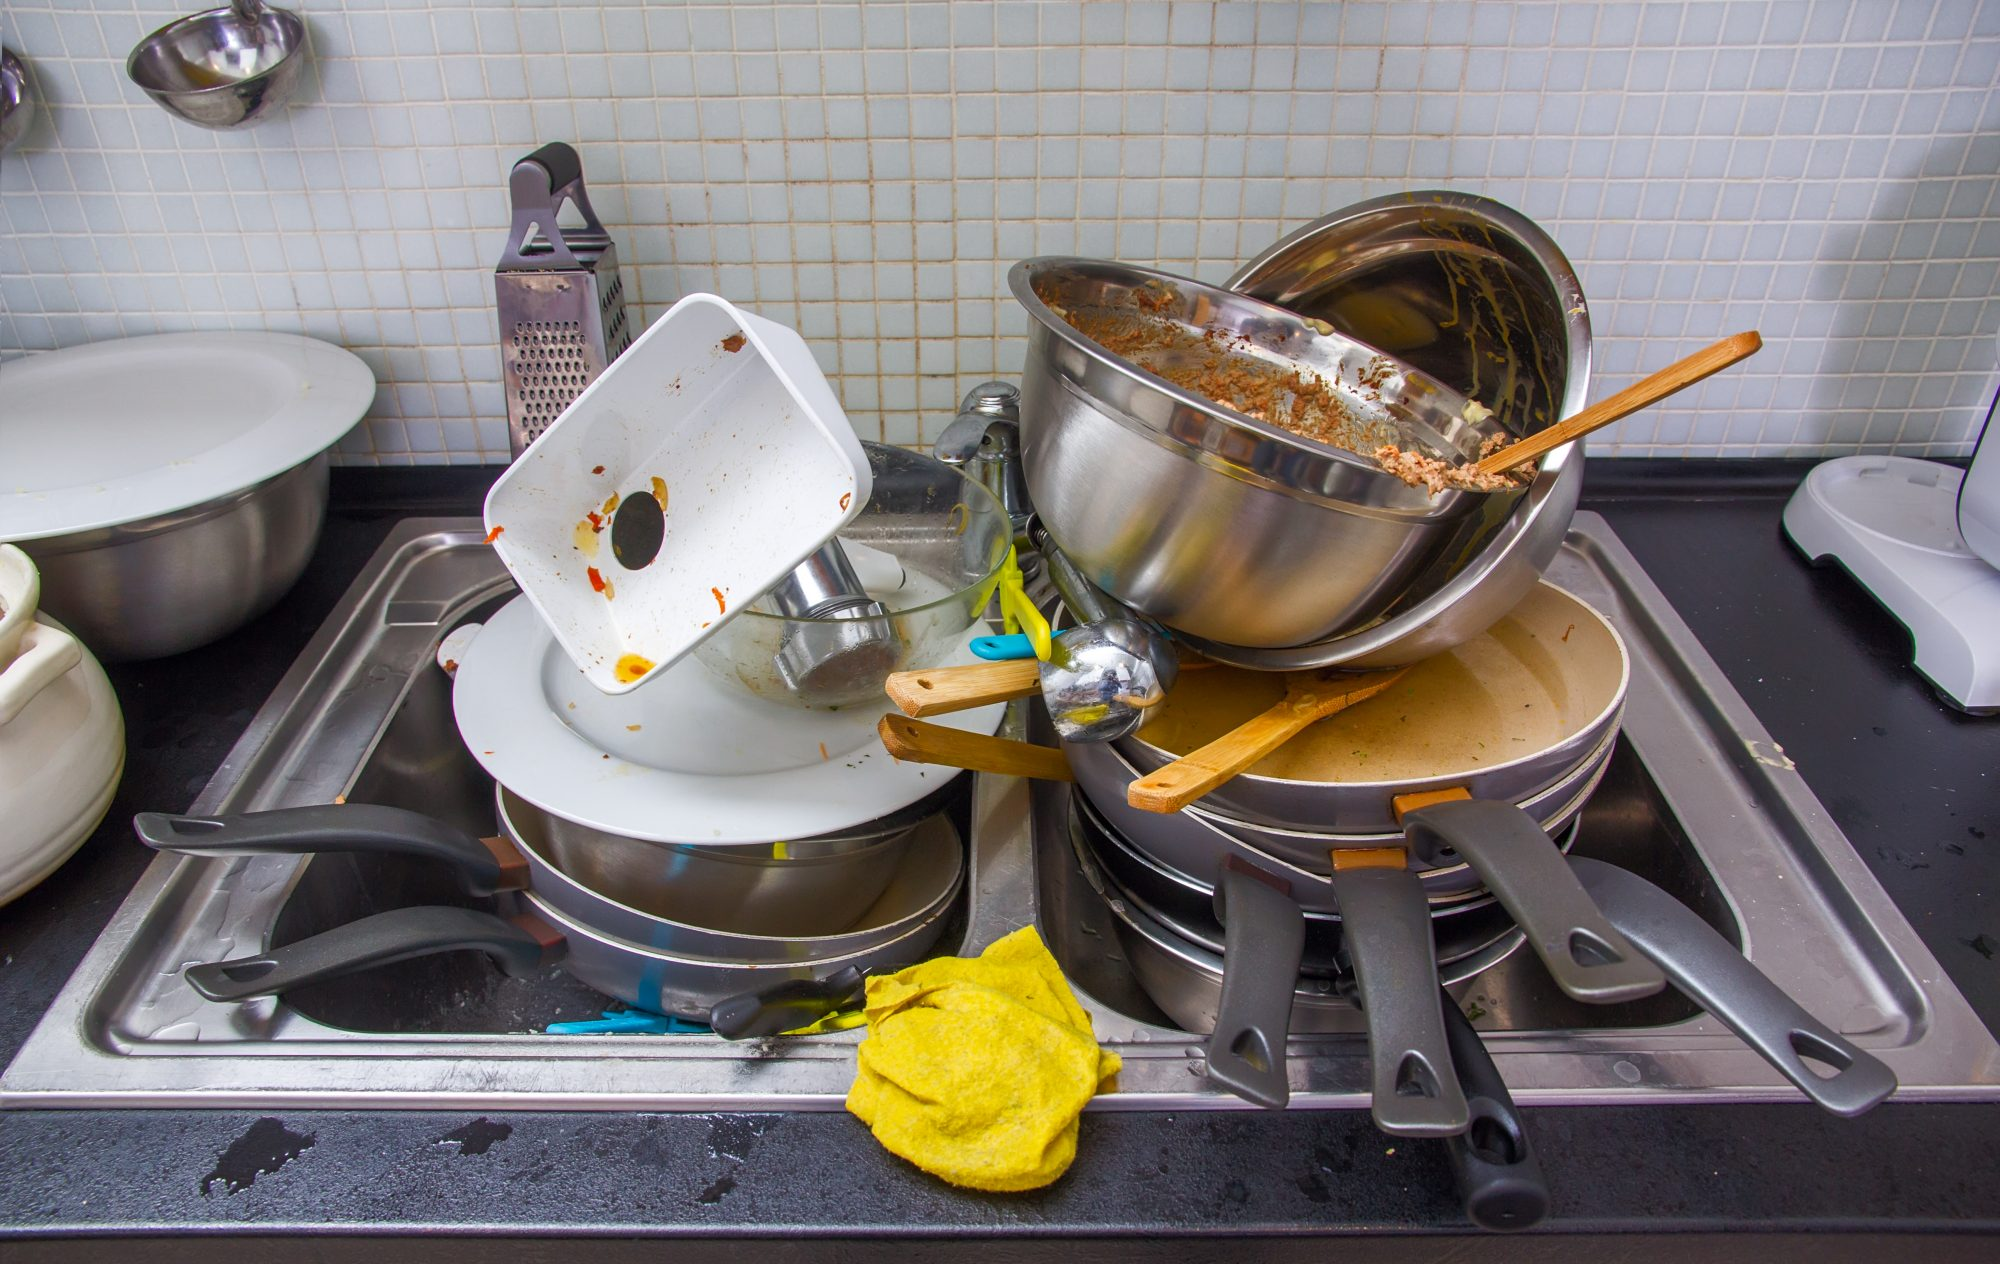 The 2-minute Trick that Will Keep Your Dirty Dishes from ...